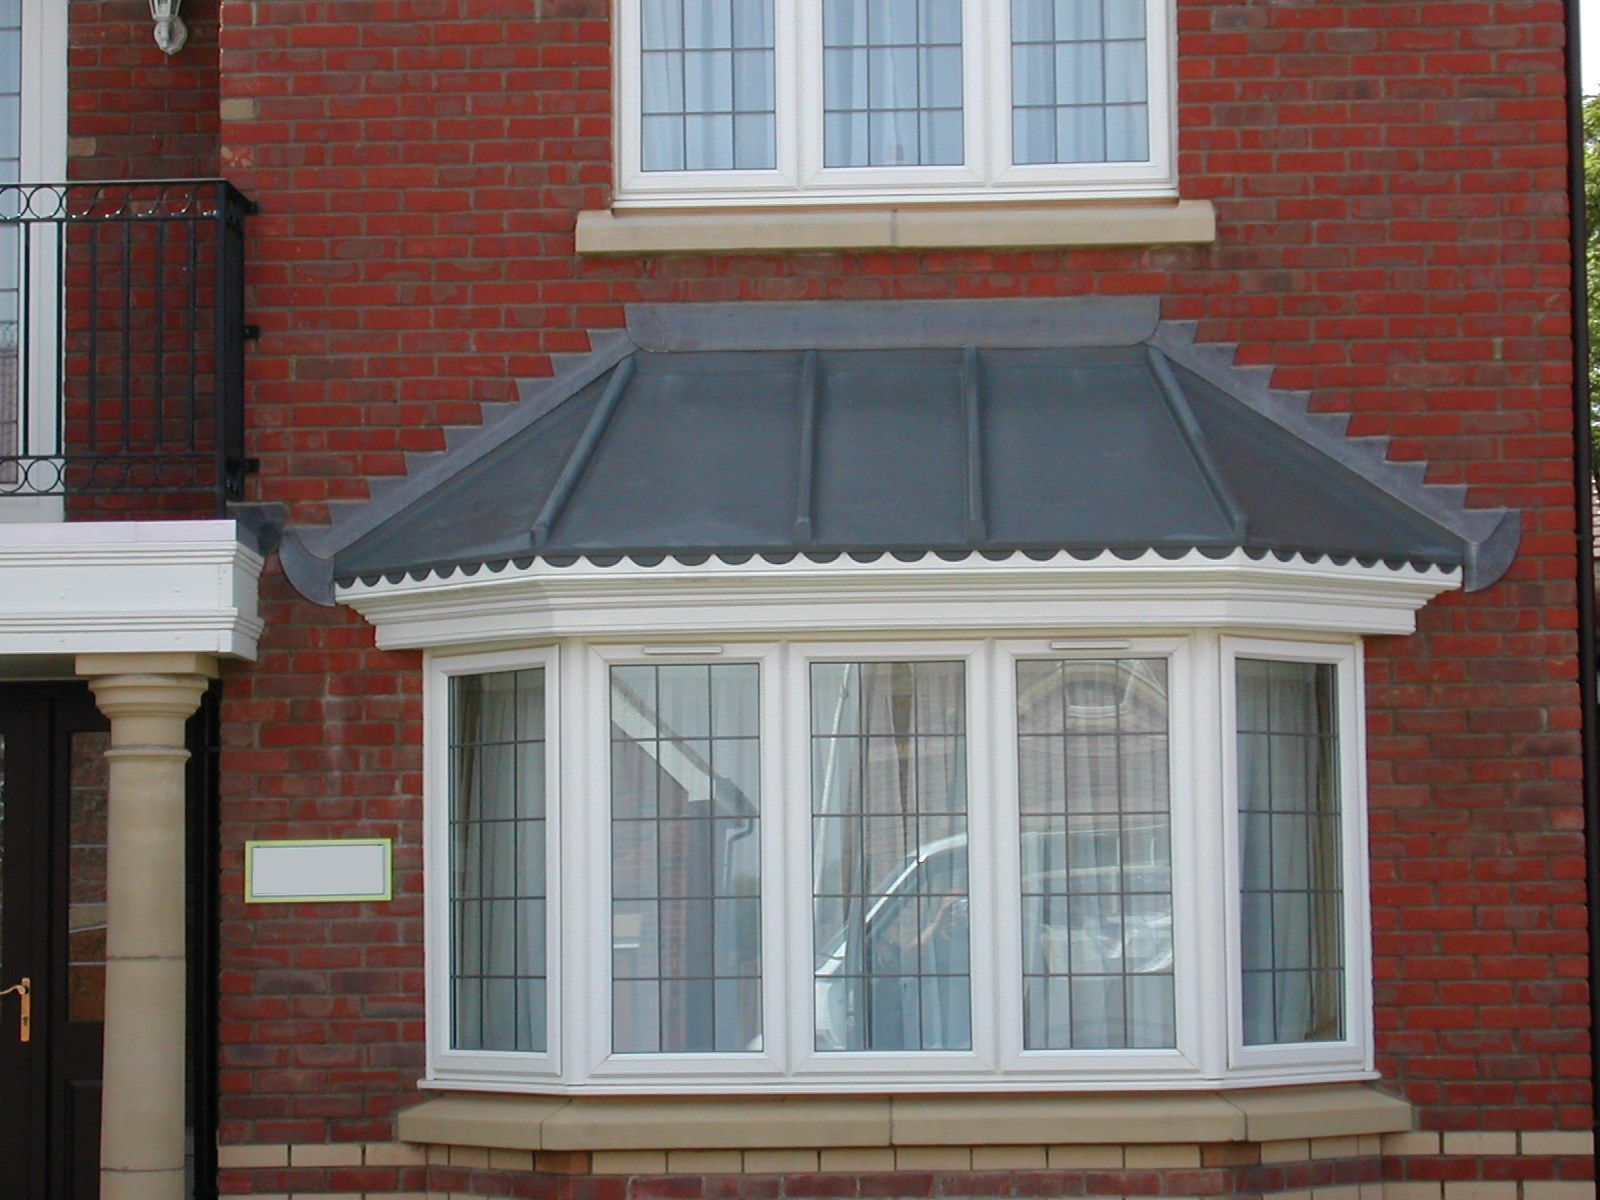 Window Canopy Bay Window Canopies Windows Patio Canopy Window Canopy